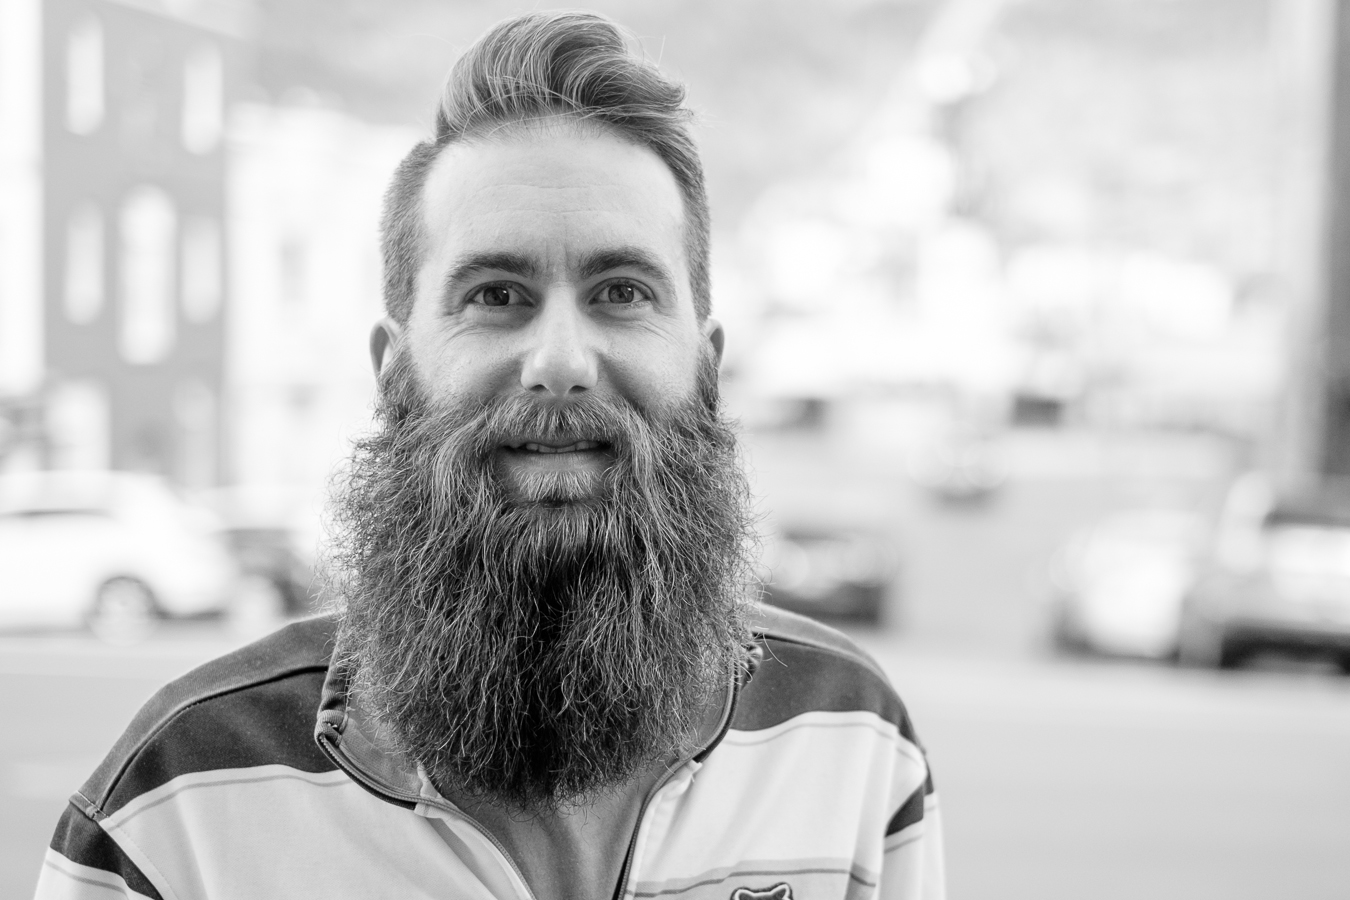 David from Moncton NB just recently participated in a beard competition in his home town - Water Street